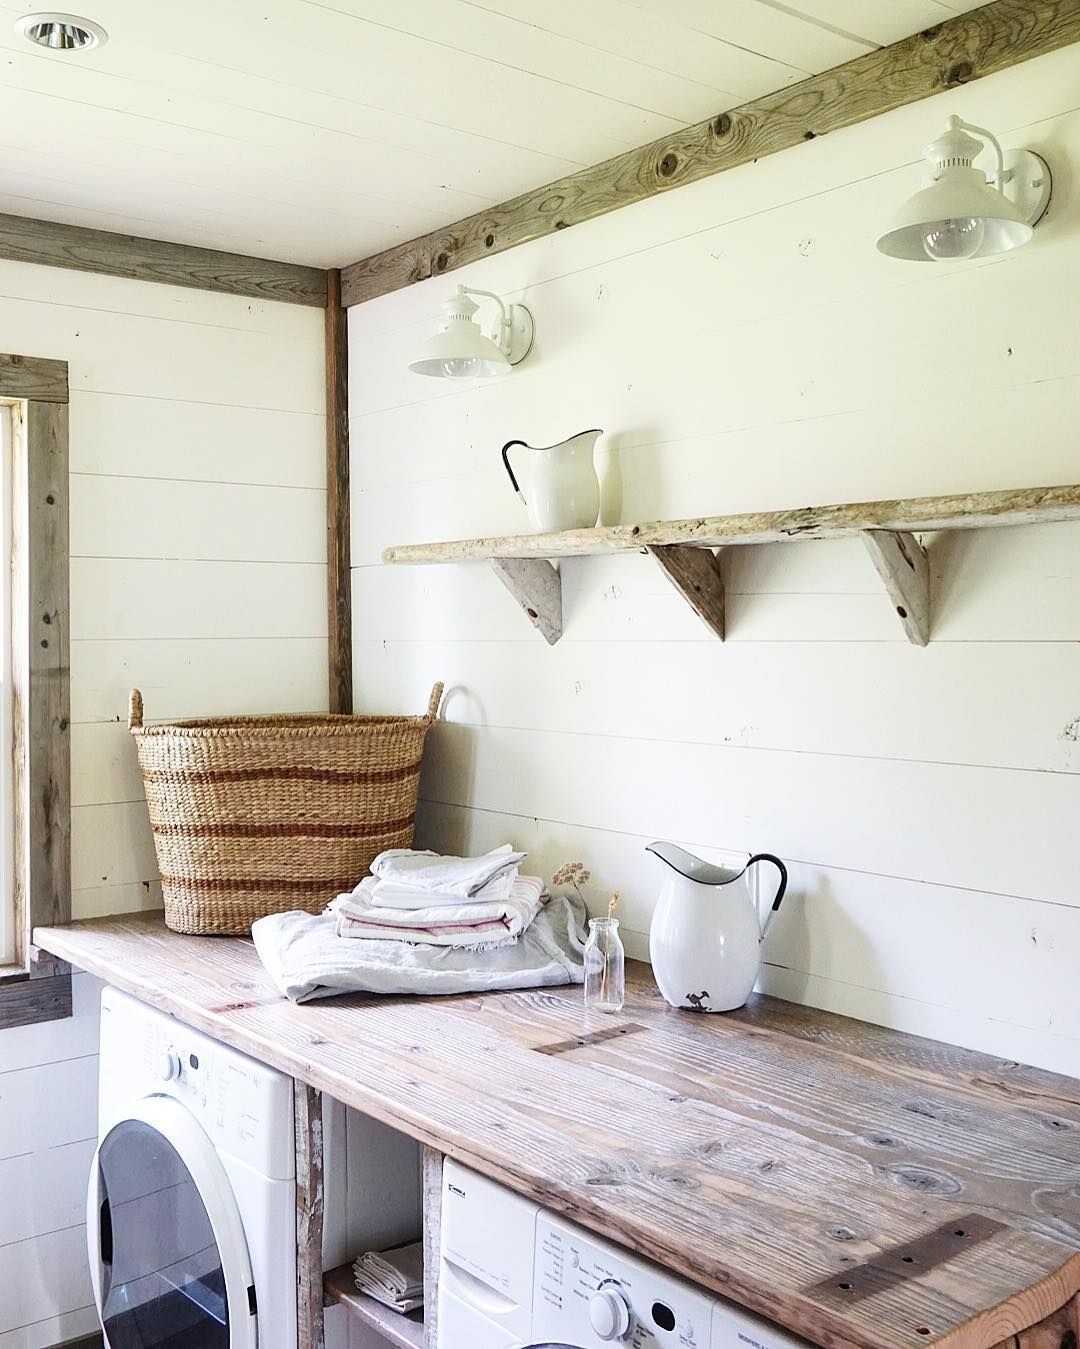 It would be cool to have an antique style laundry room with old wood ...